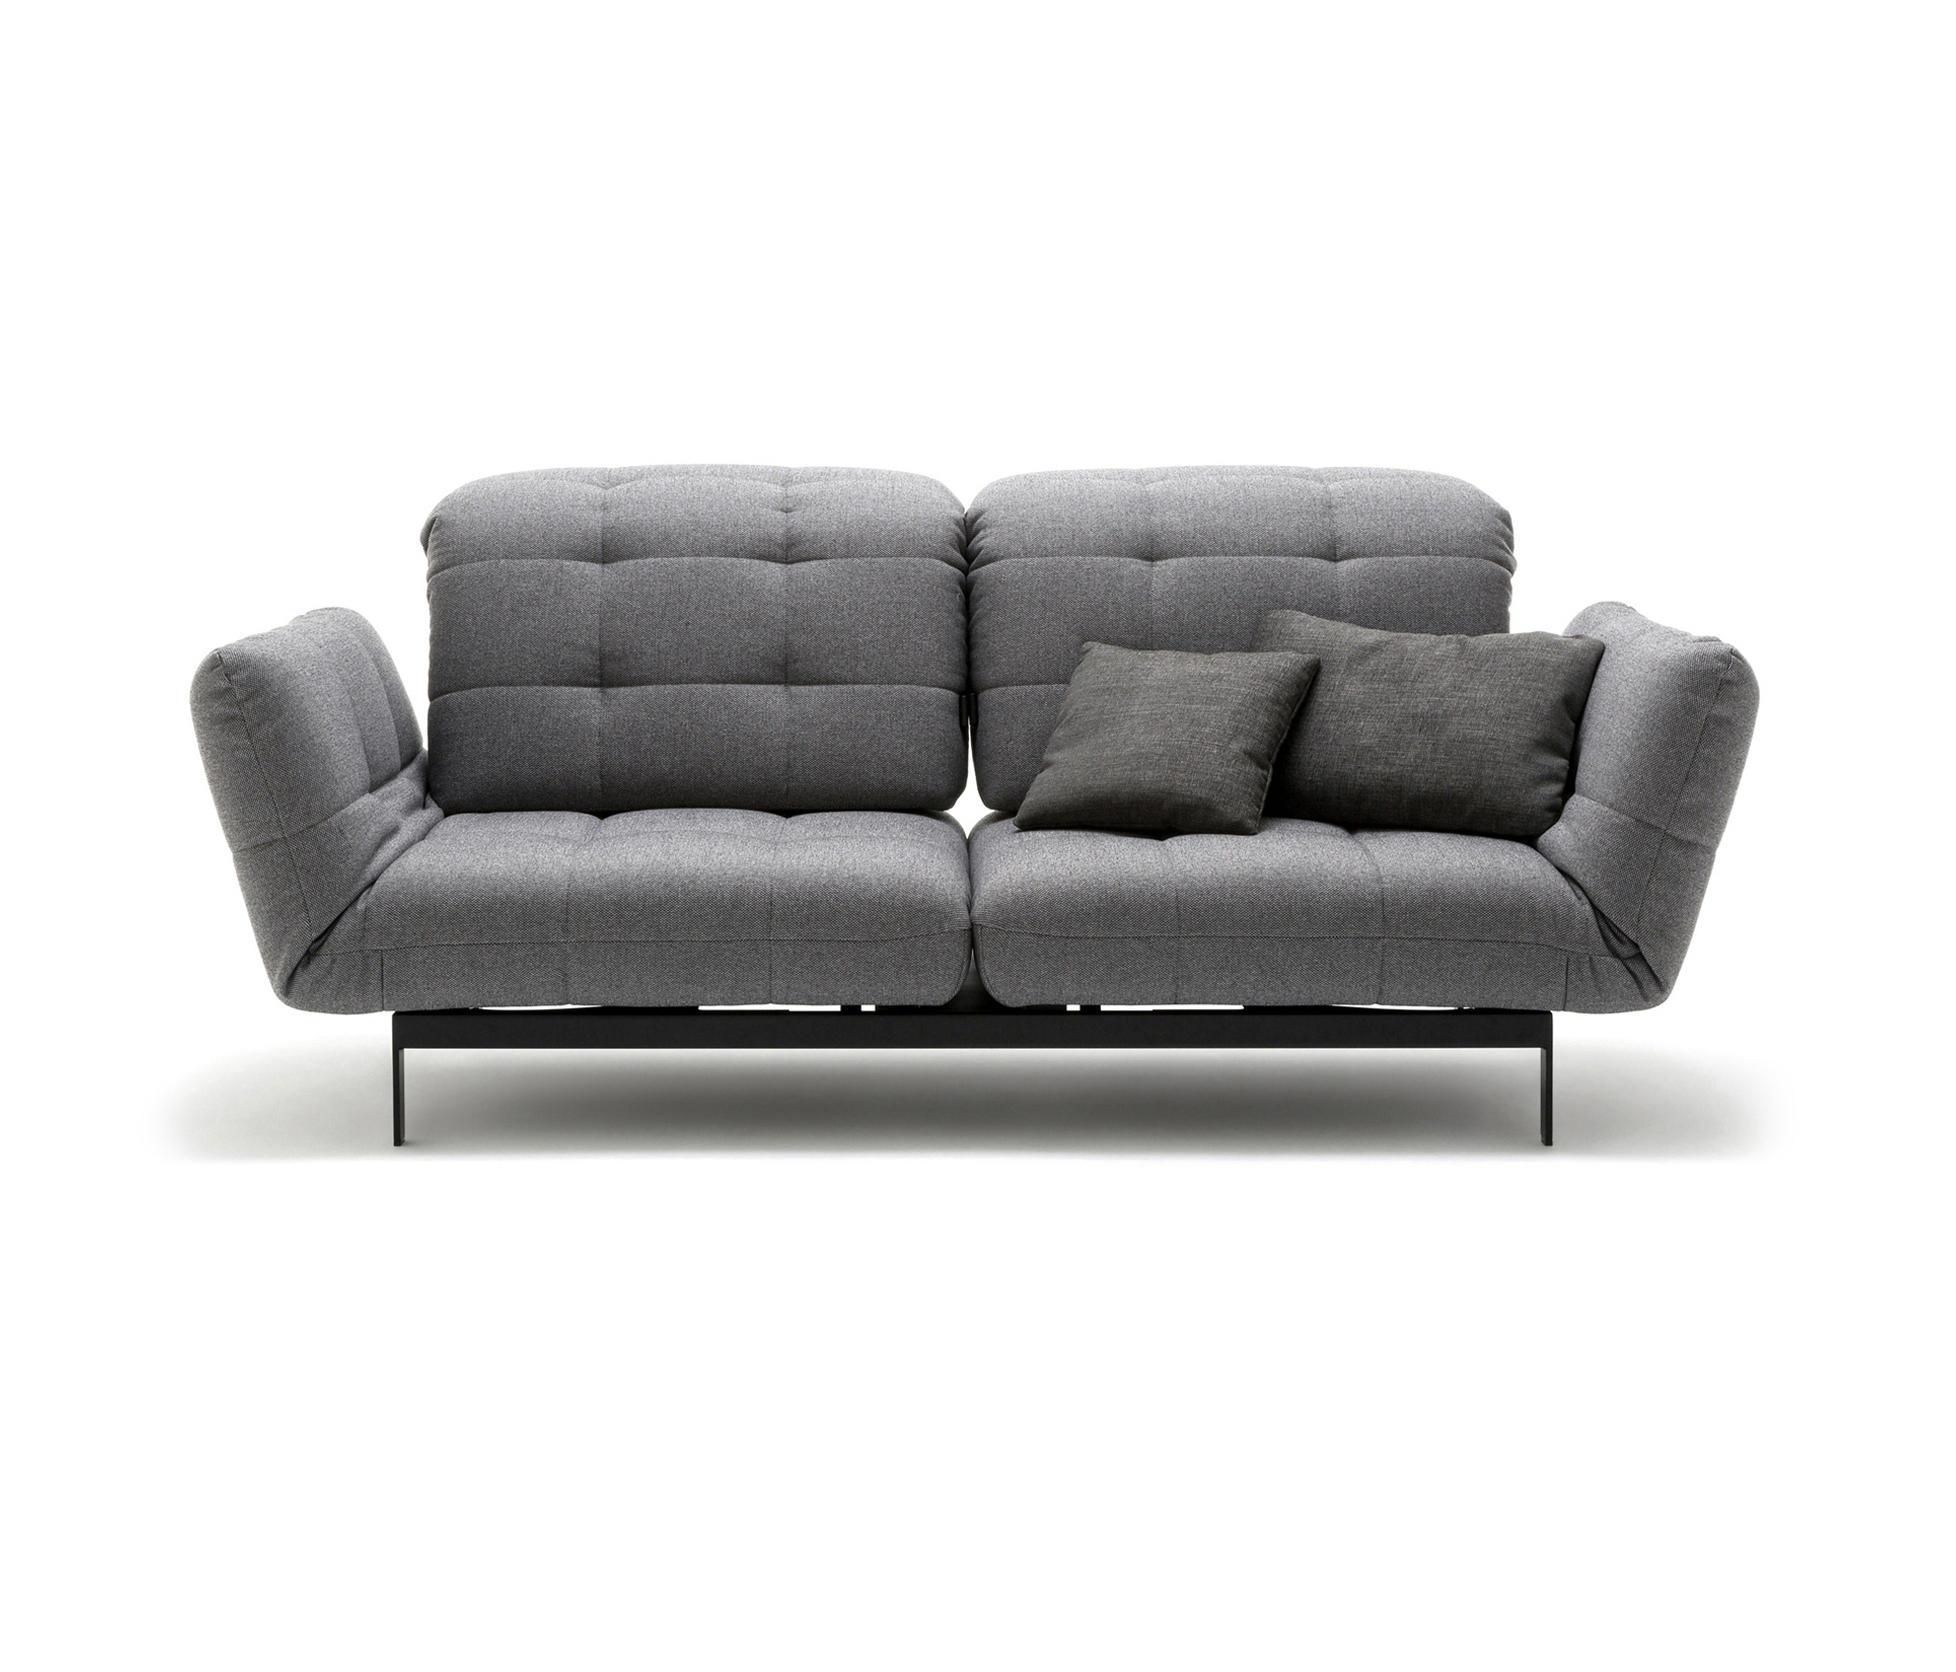 Rolf benz agio sofas von rolf benz architonic for Rolf benz katalog